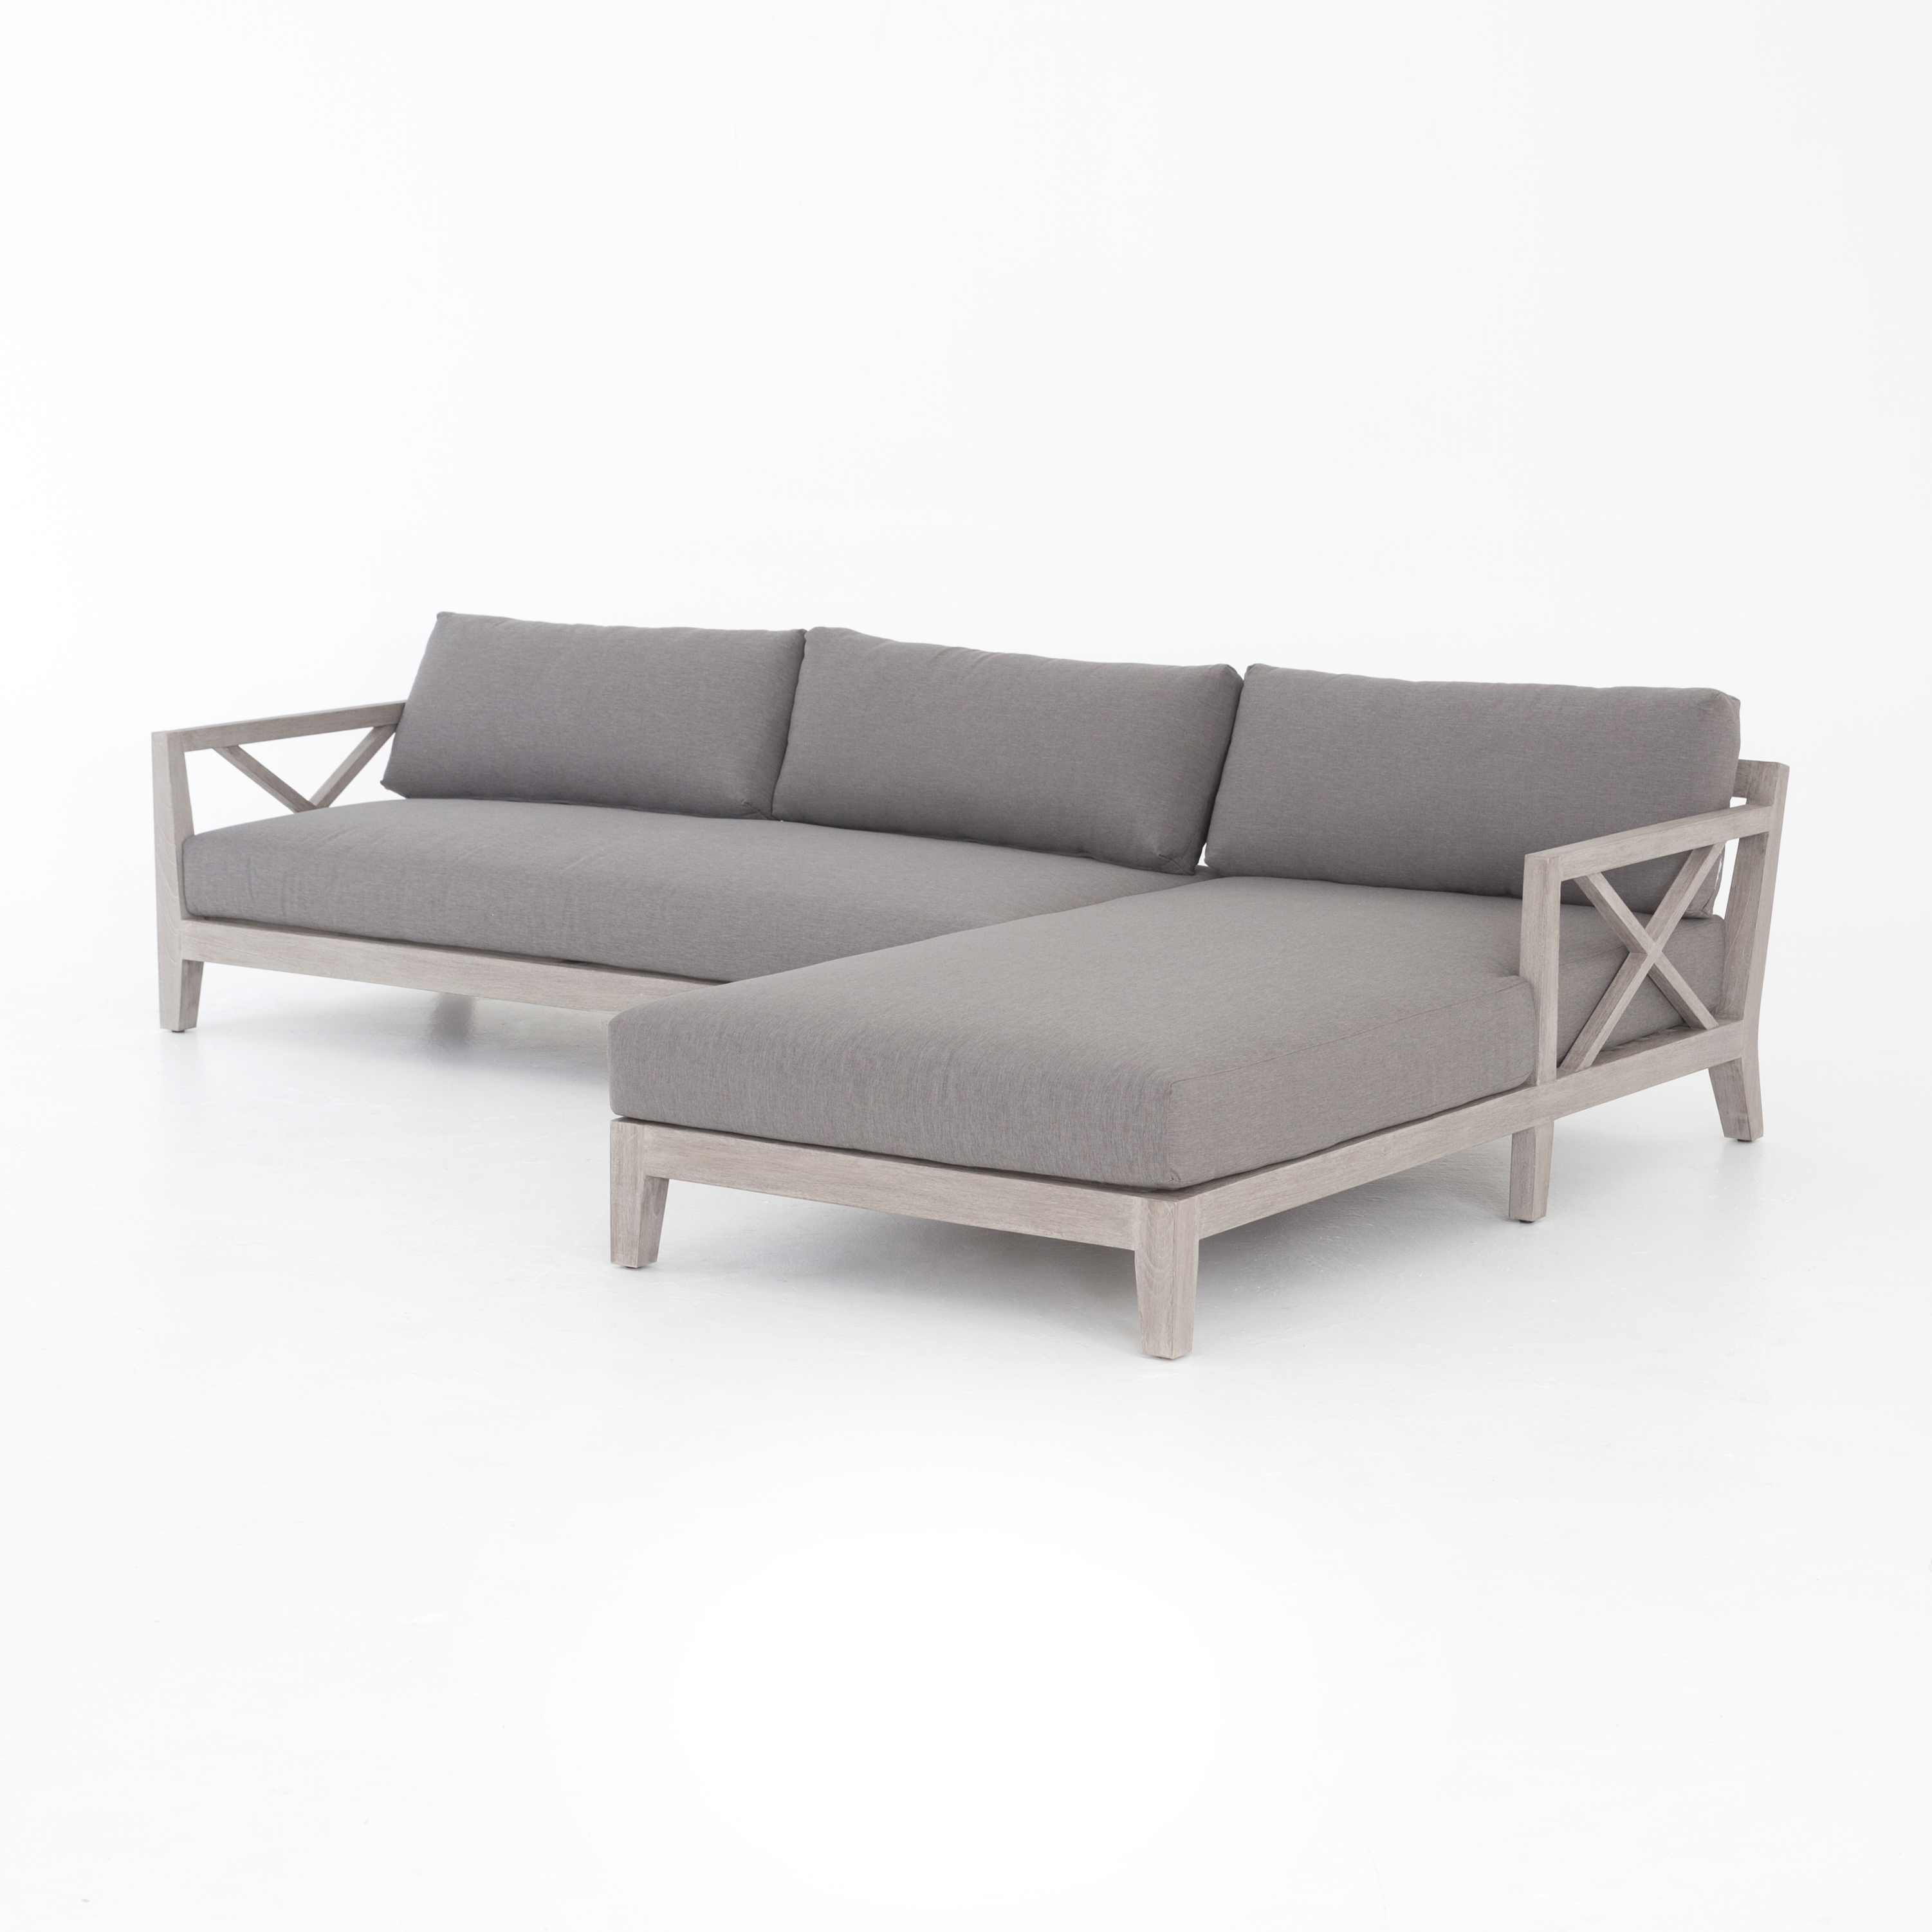 Huntington 2 Pc Outdoor Sectional Raf Chaise • Q&c Home Intended For Cosmos Grey 2 Piece Sectionals With Raf Chaise (Image 12 of 25)